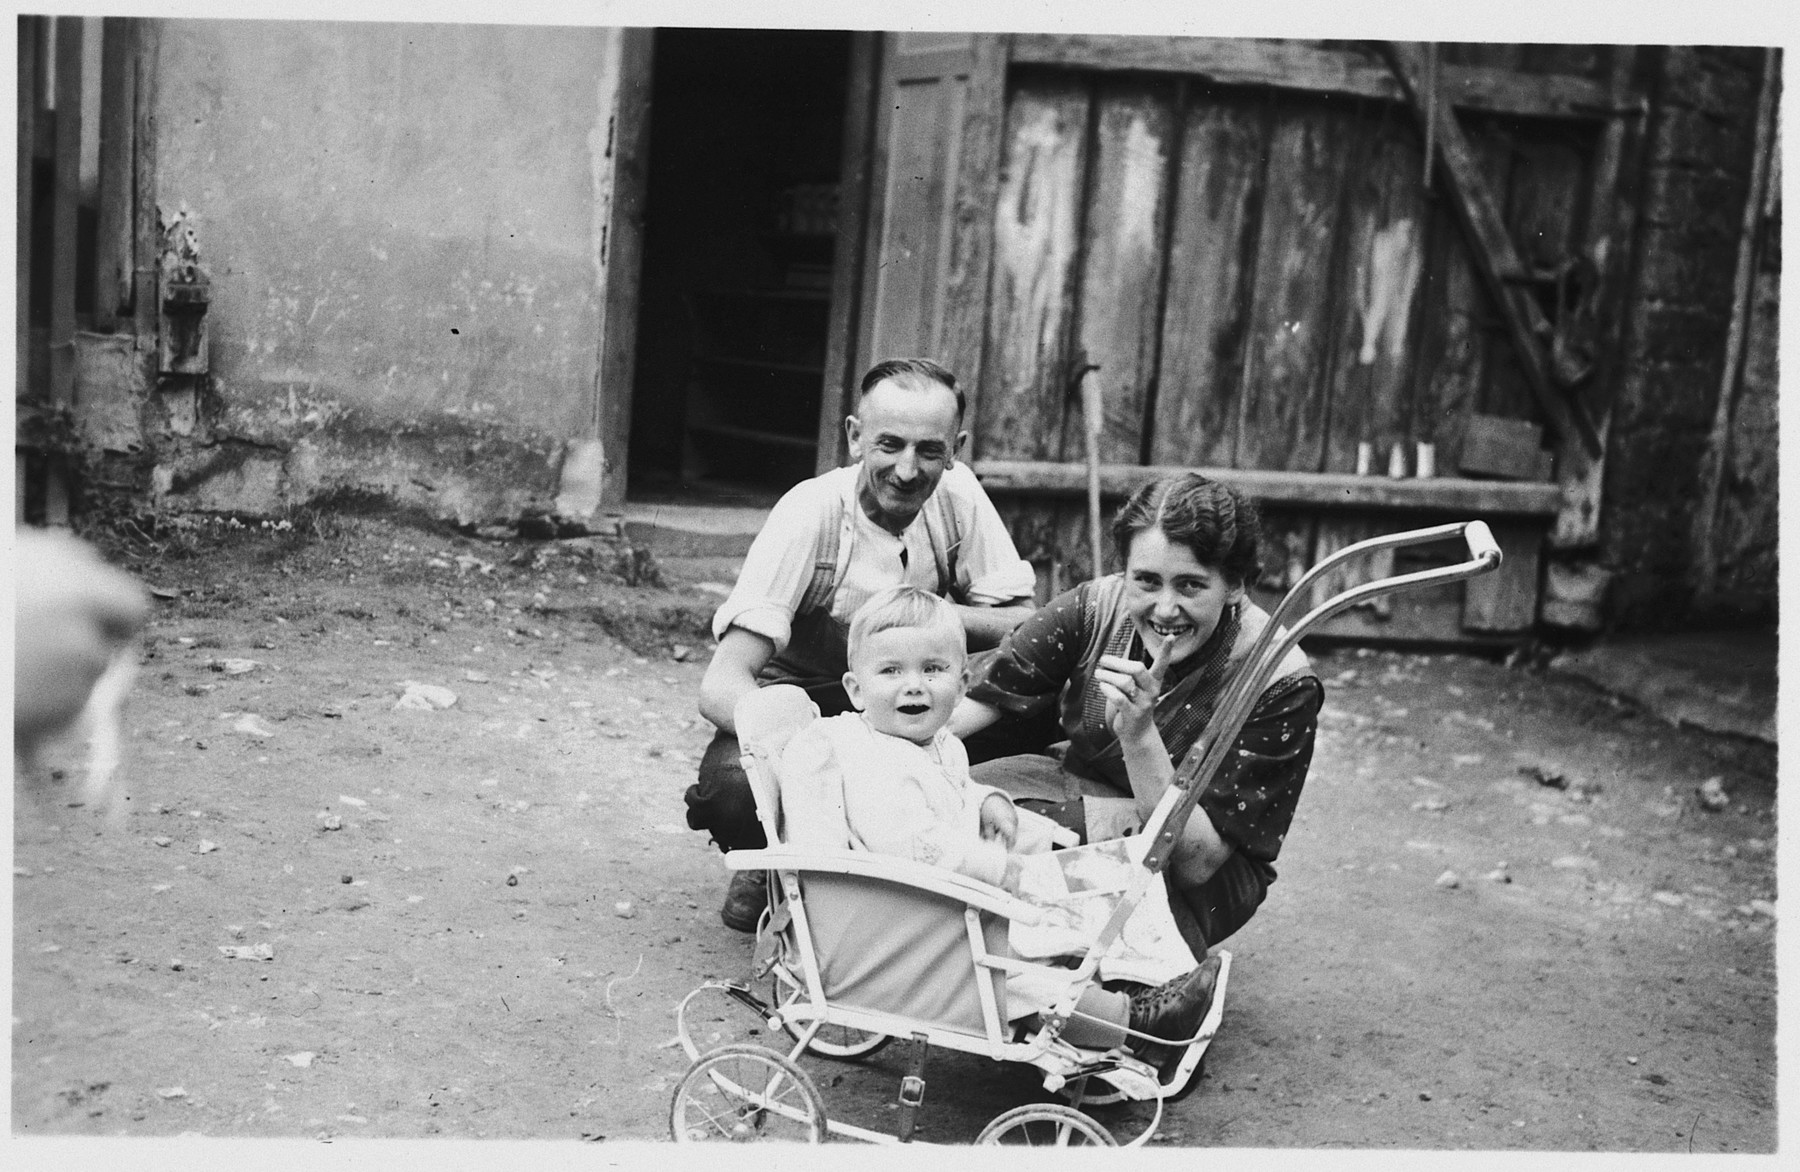 A Jewish family poses with a toddler in a stroller outside a barn.  Pictured is the Keller family.